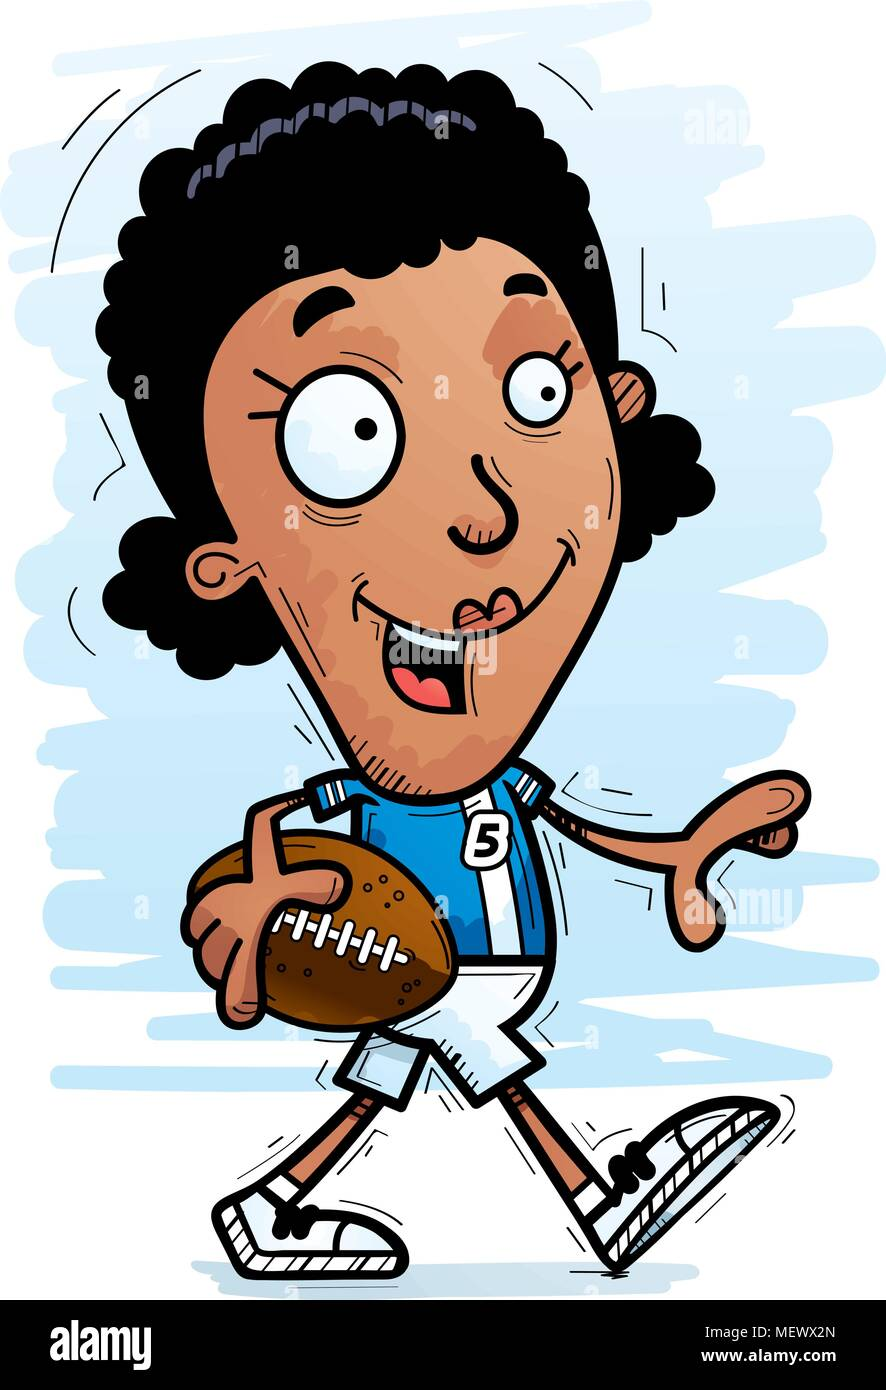 A Cartoon Illustration Of A Black Woman Football Player